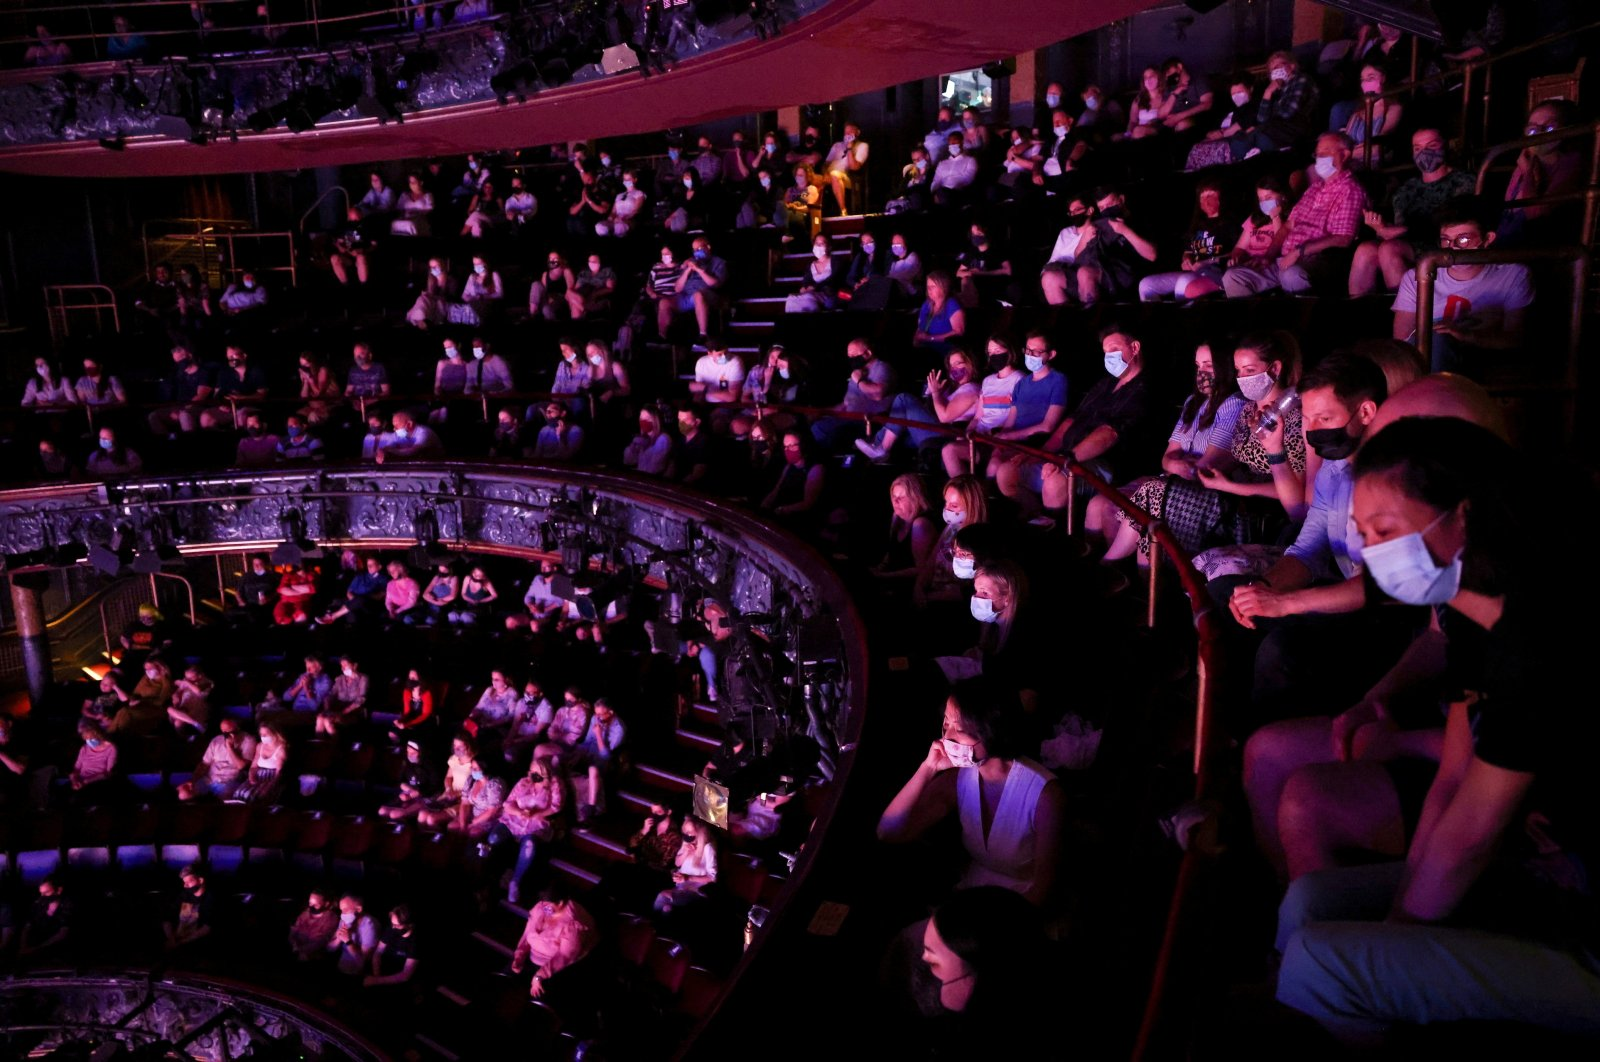 """Guests watch a performance of the West End show """"The Show Must Go On"""" at the Palace Theater, amid the spread of COVID-19 in London, U.K., June 2, 2021. (Reuters Photo)"""